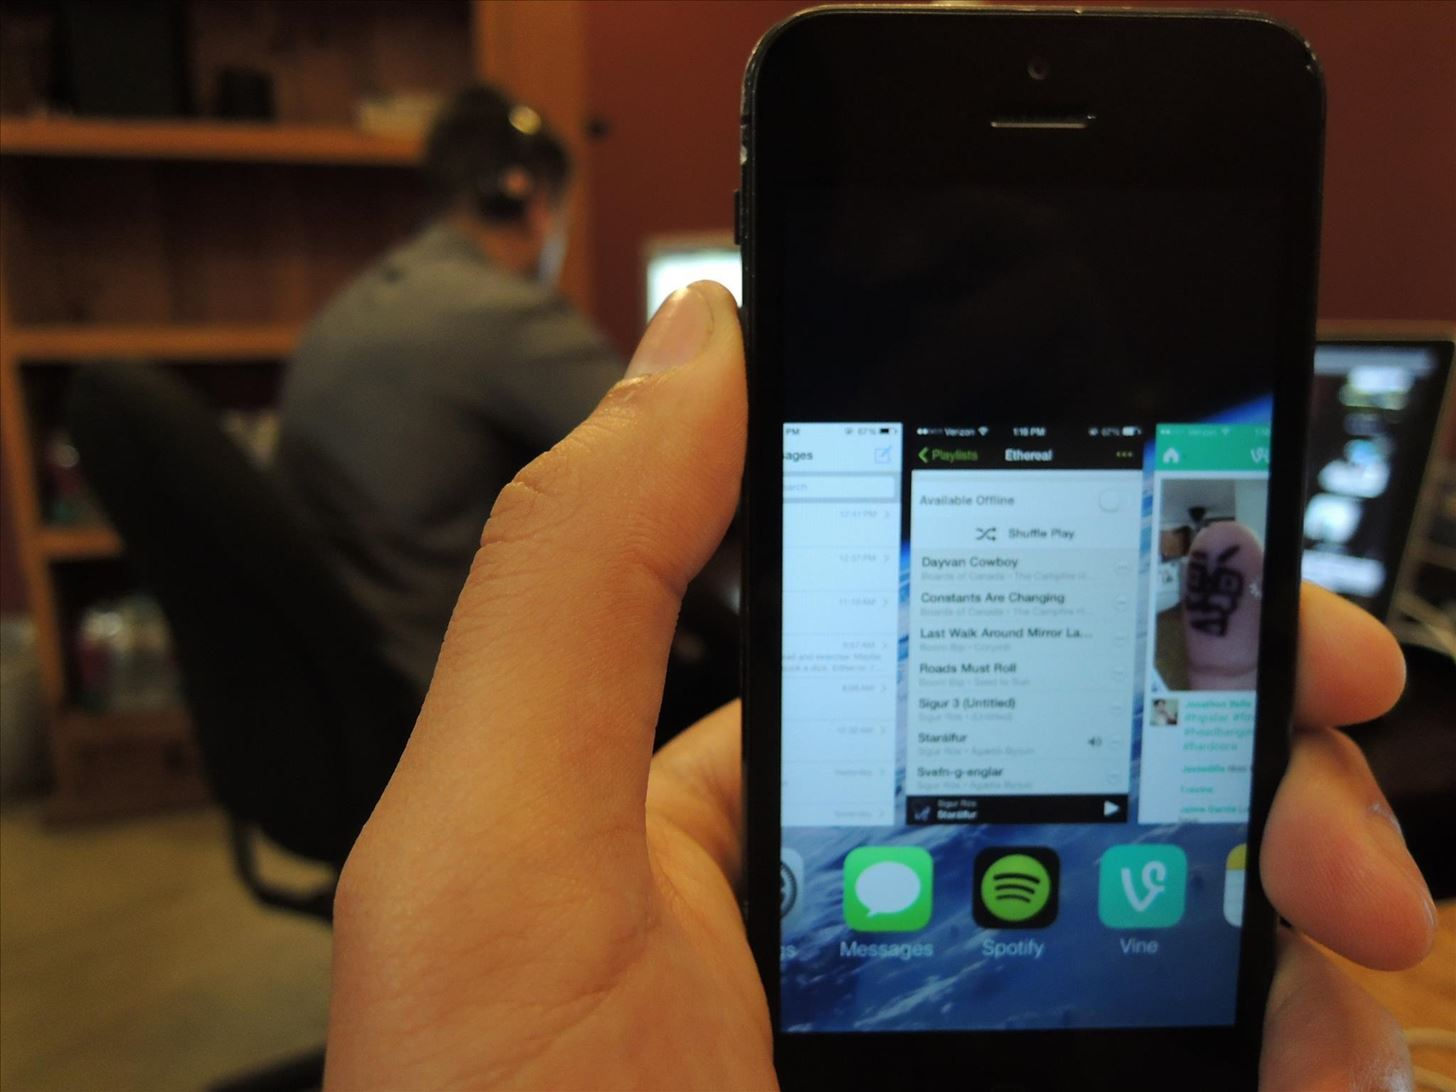 About iPhone Spy Apps